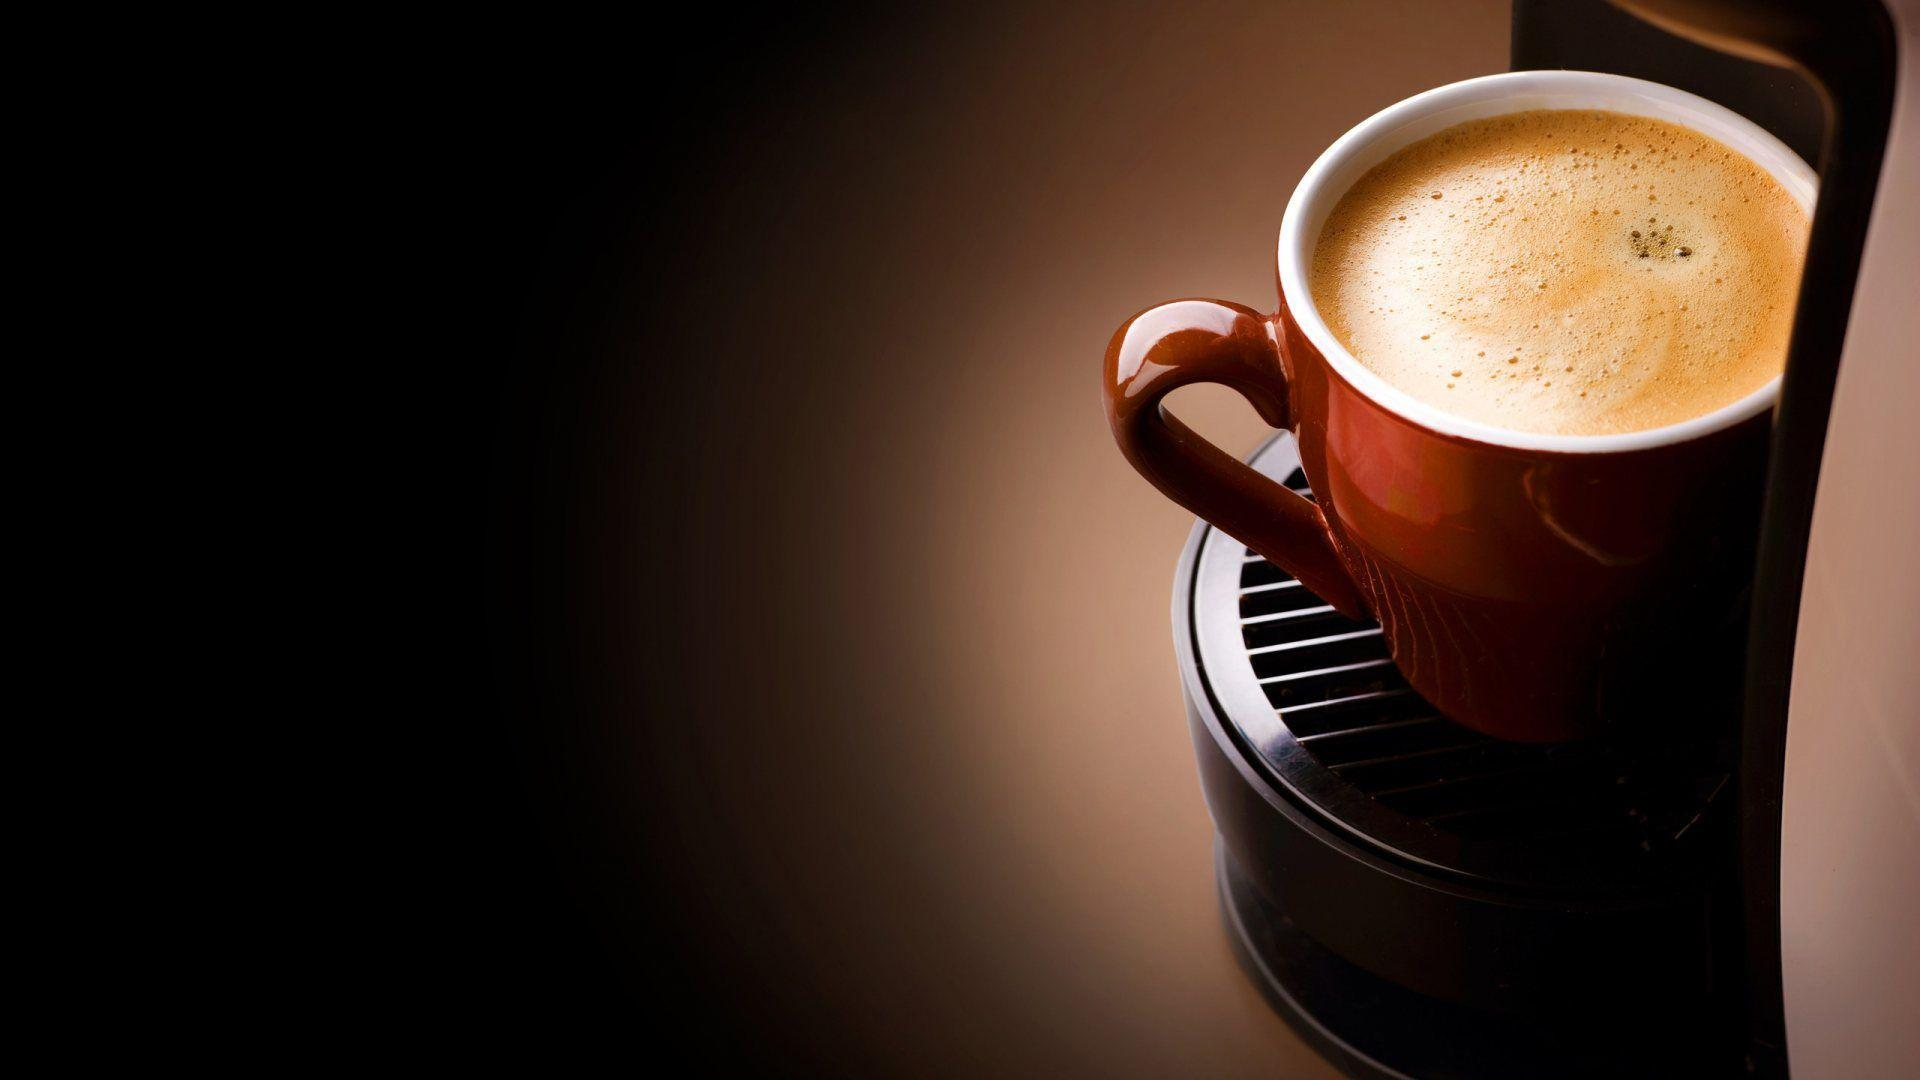 hot coffee wallpaper hd - photo #3